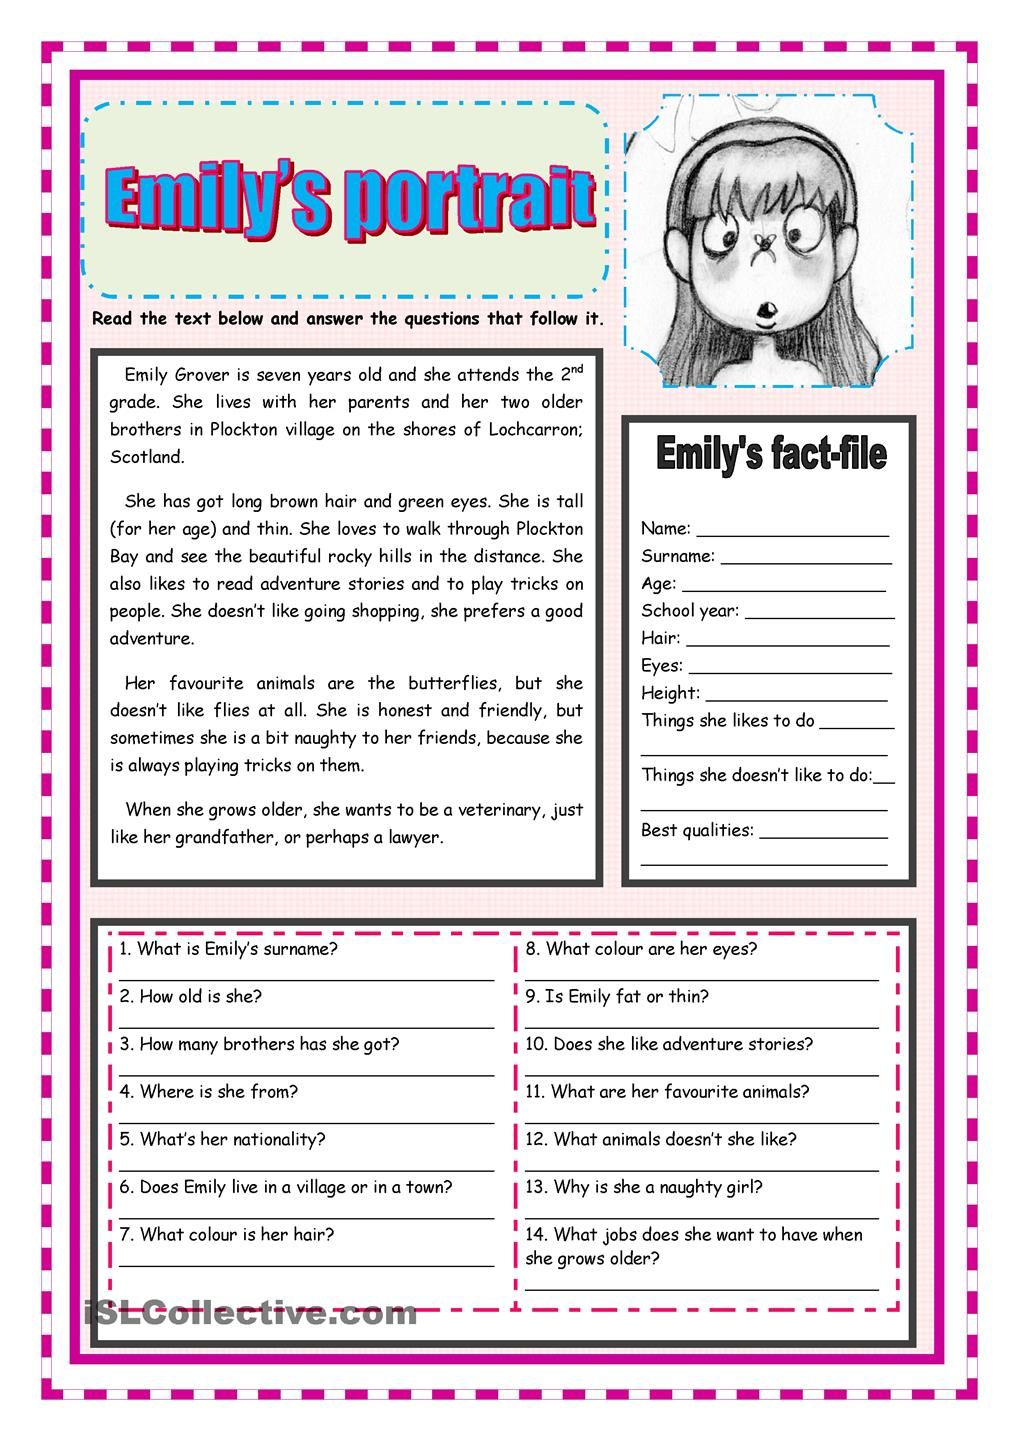 Workbooks prehistory worksheets : PrimaryLeap.co.uk - Extreme Weather Conditions - Hurricanes ...